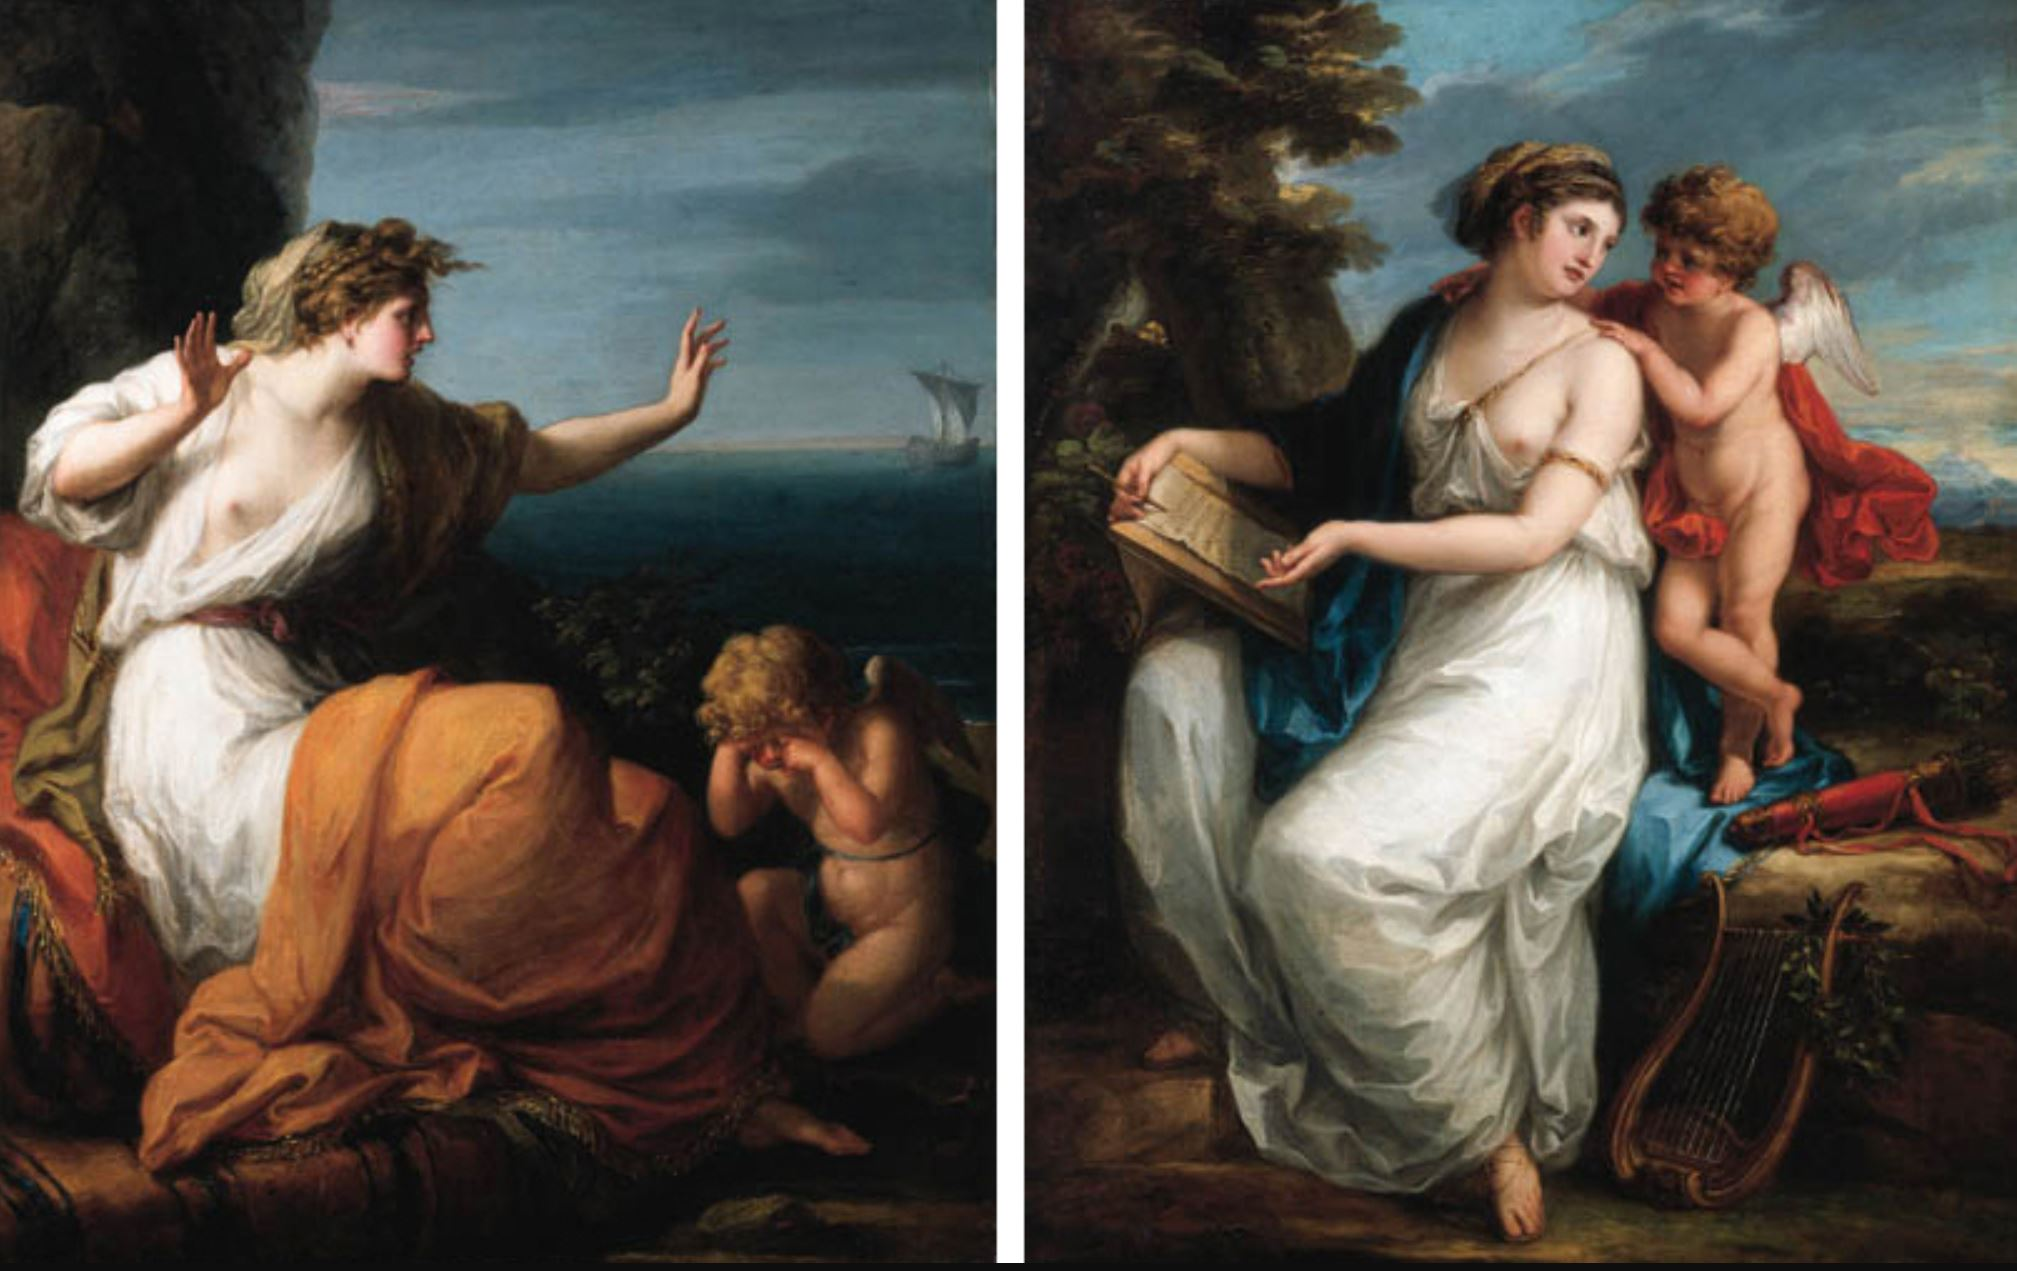 Angelica Kauffmann Ariadne abandoned by Theseus; and Sappho inspired by love coll priv